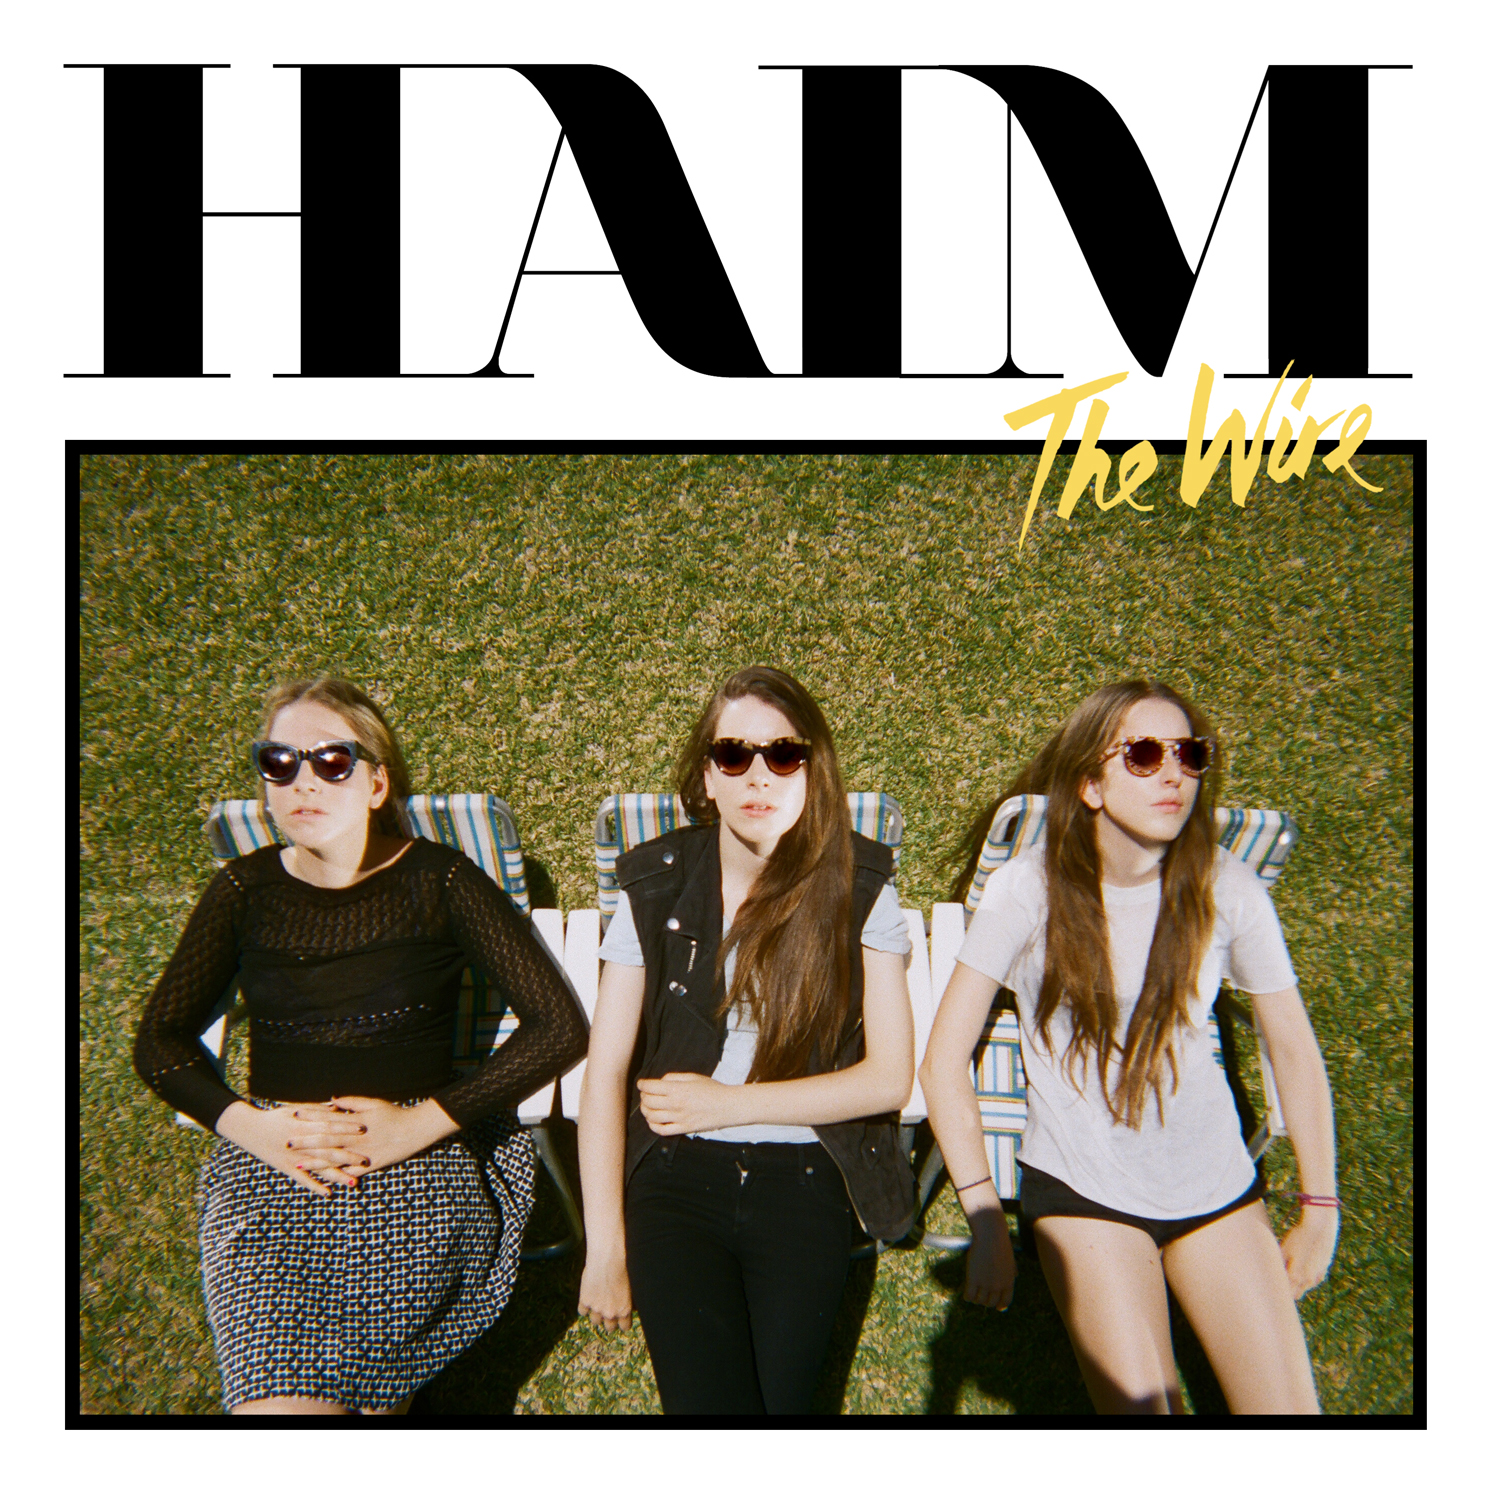 OCTOBER 2013: On Tour Monthly Recommends (featuring HAIM)